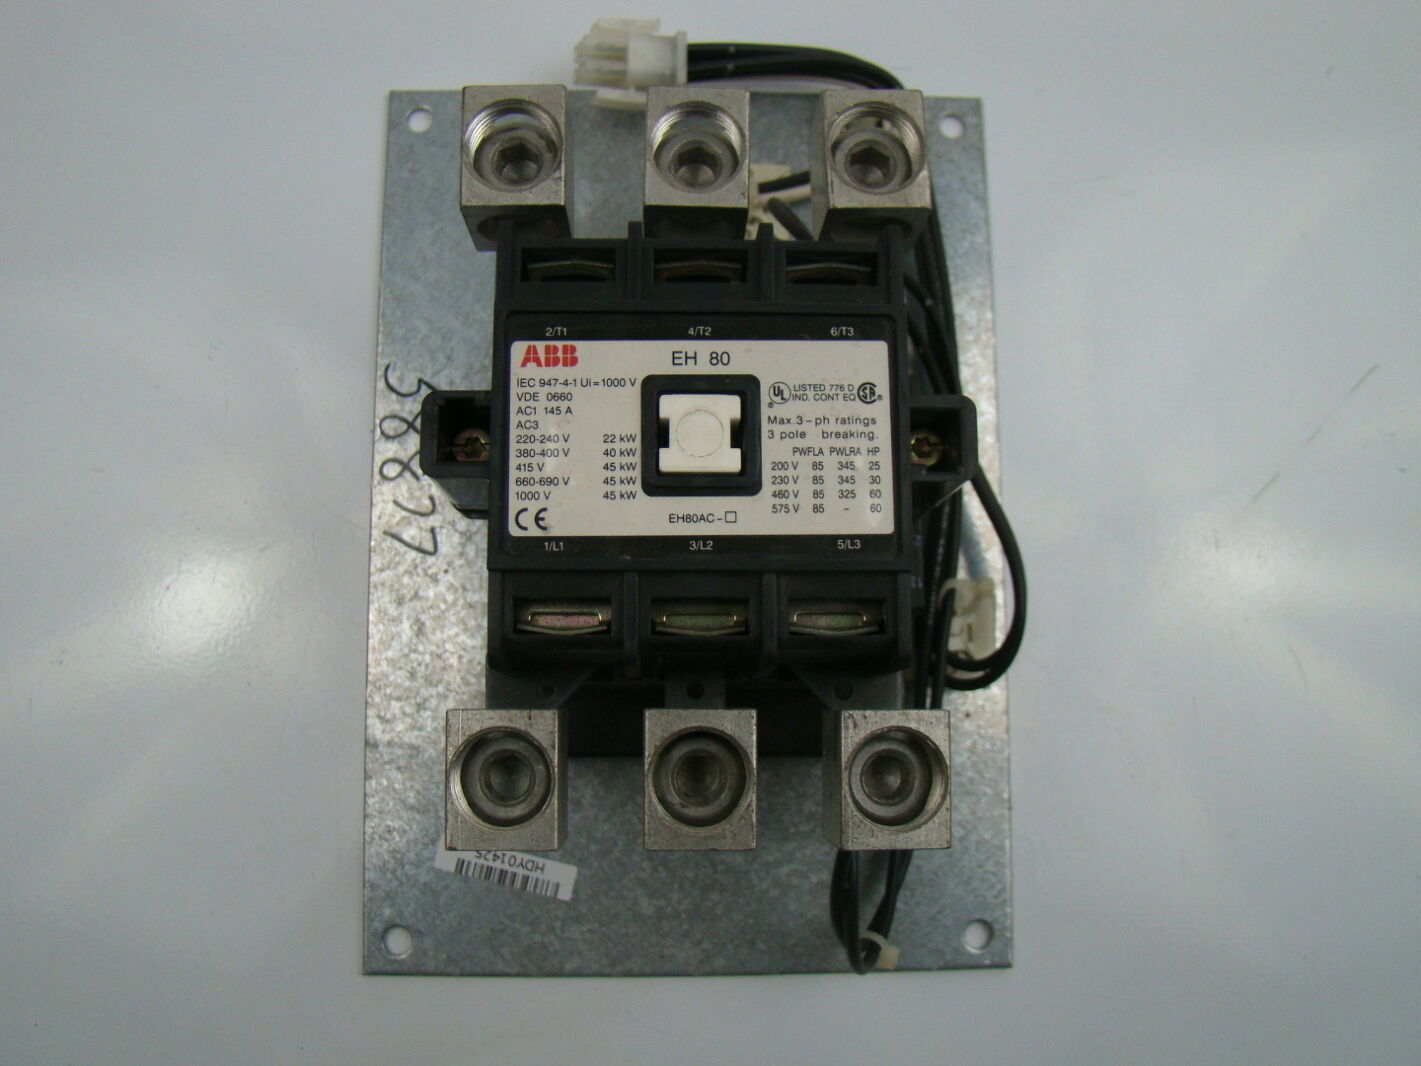 abb 3 phase eh80 contactor iec 947-4-1